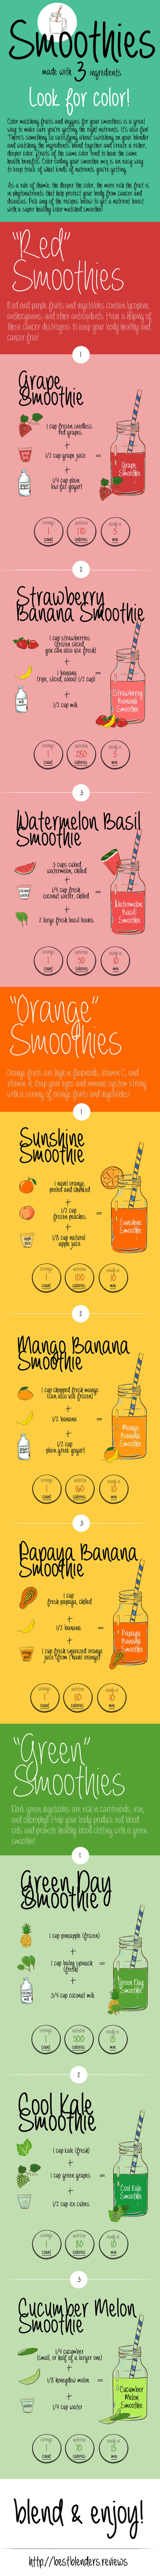 What Color Is Your Smoothie? [infographic]